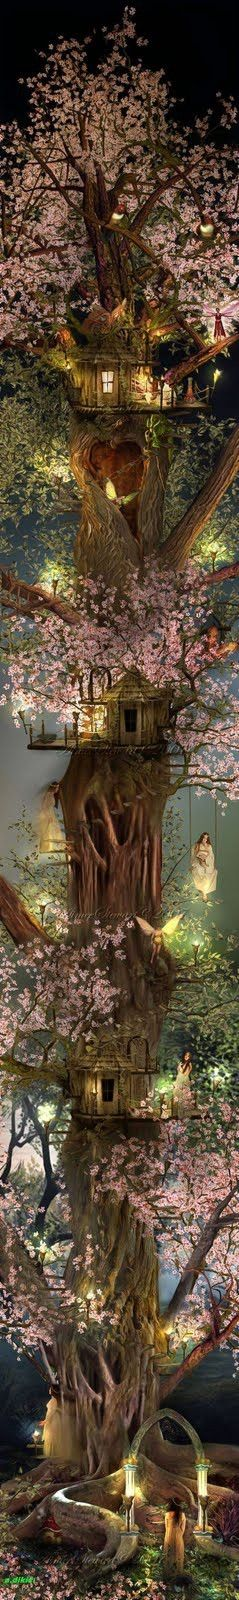 Faerie Tree, really beautiful